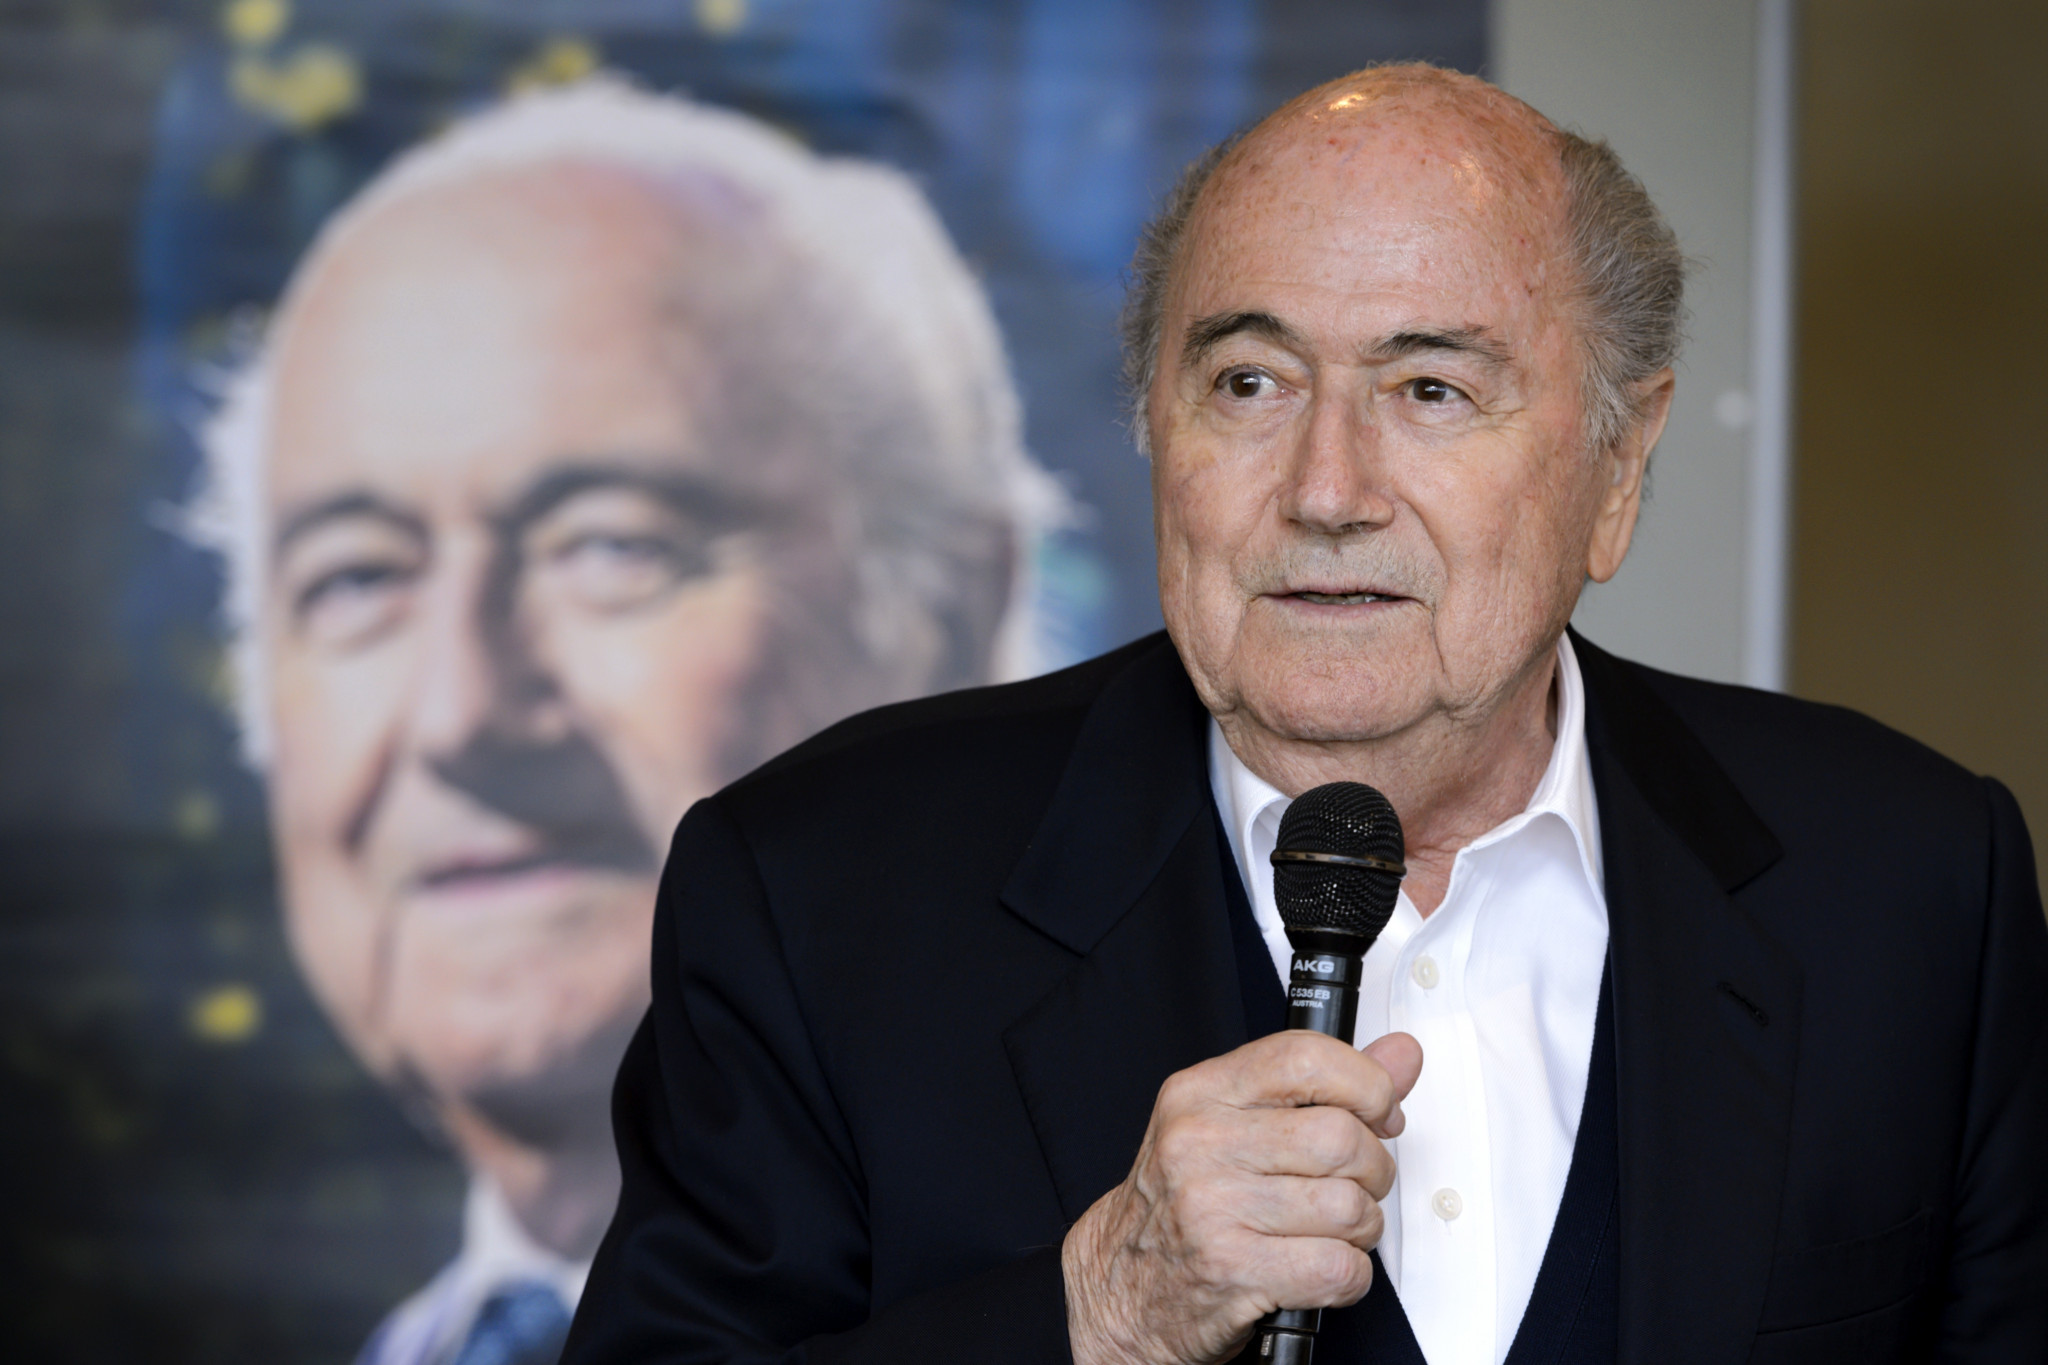 Former FIFA President Sepp Blatter is recovering in hospital following heart surgery ©Getty Images